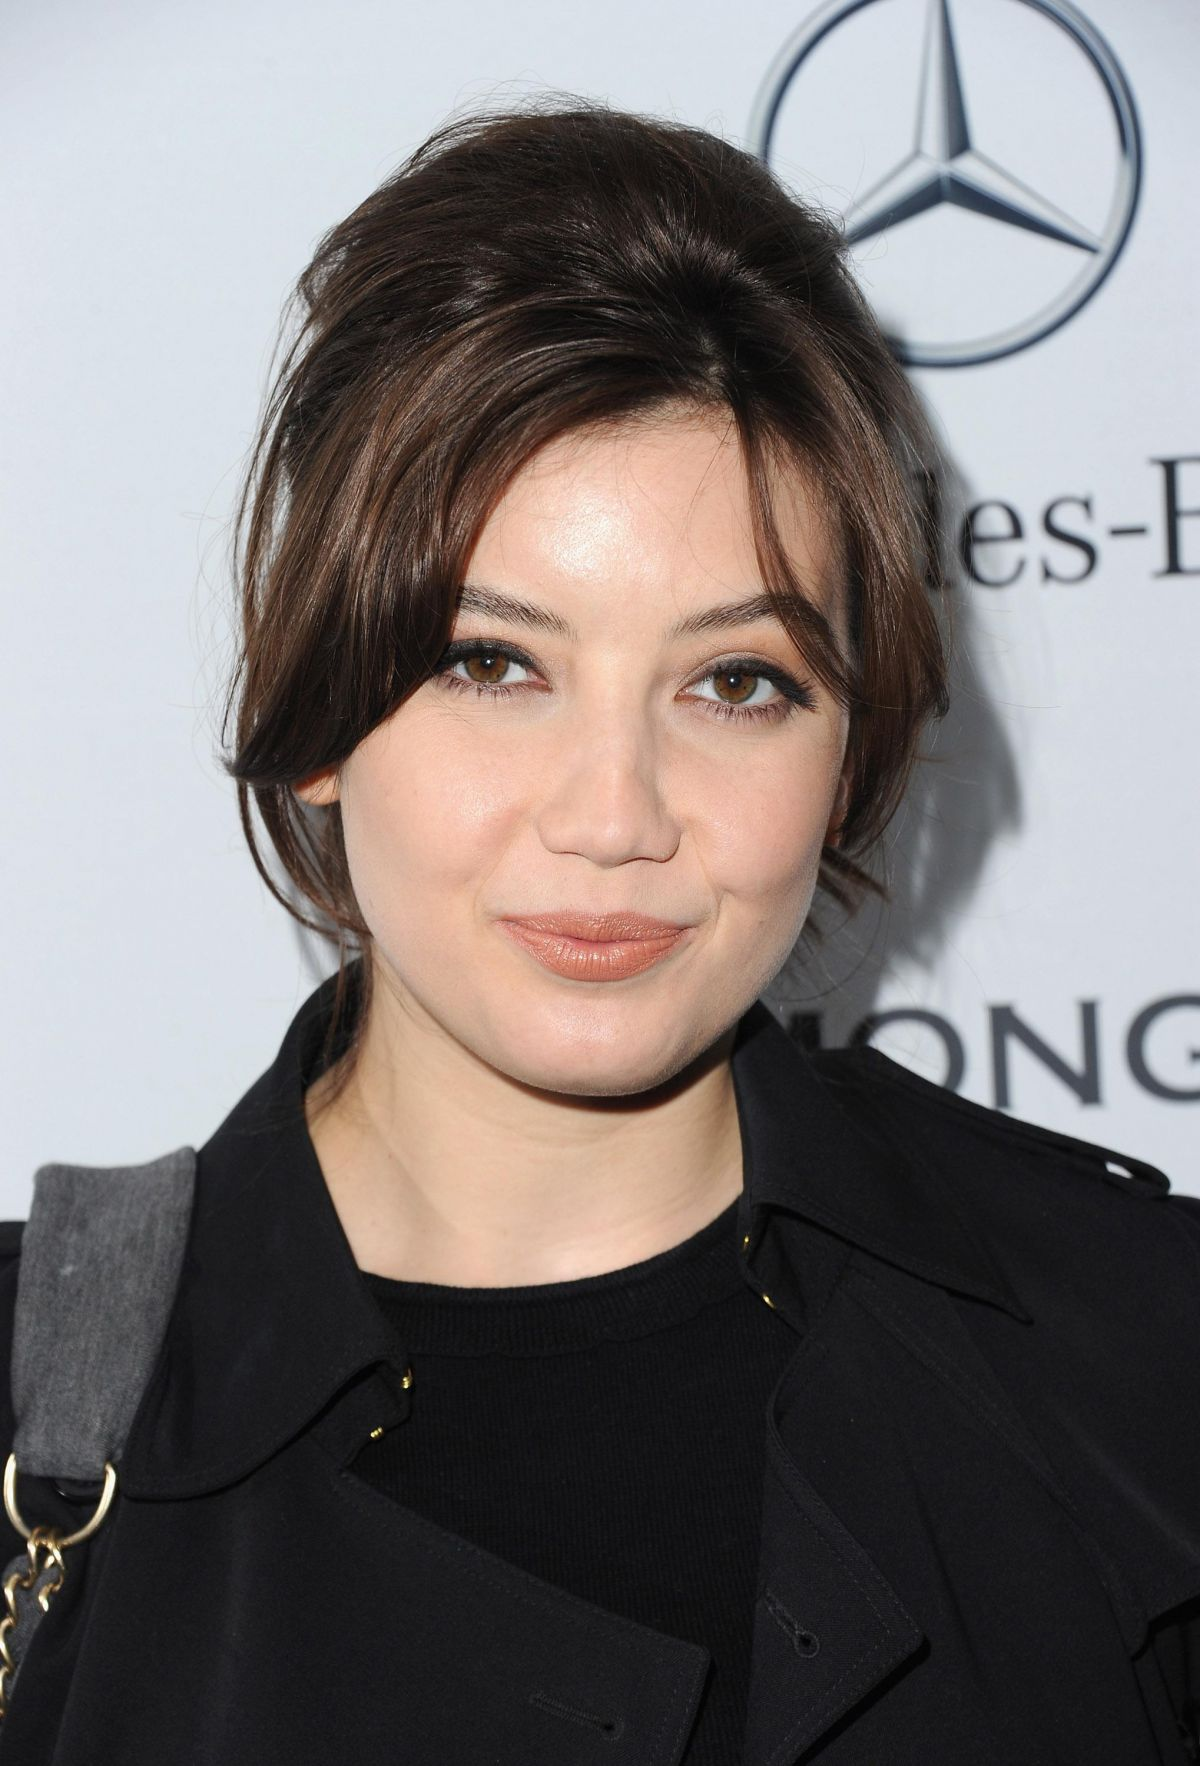 DAISY LOWE at Mercedes-Benz and Simon Gao Fashion Show in London